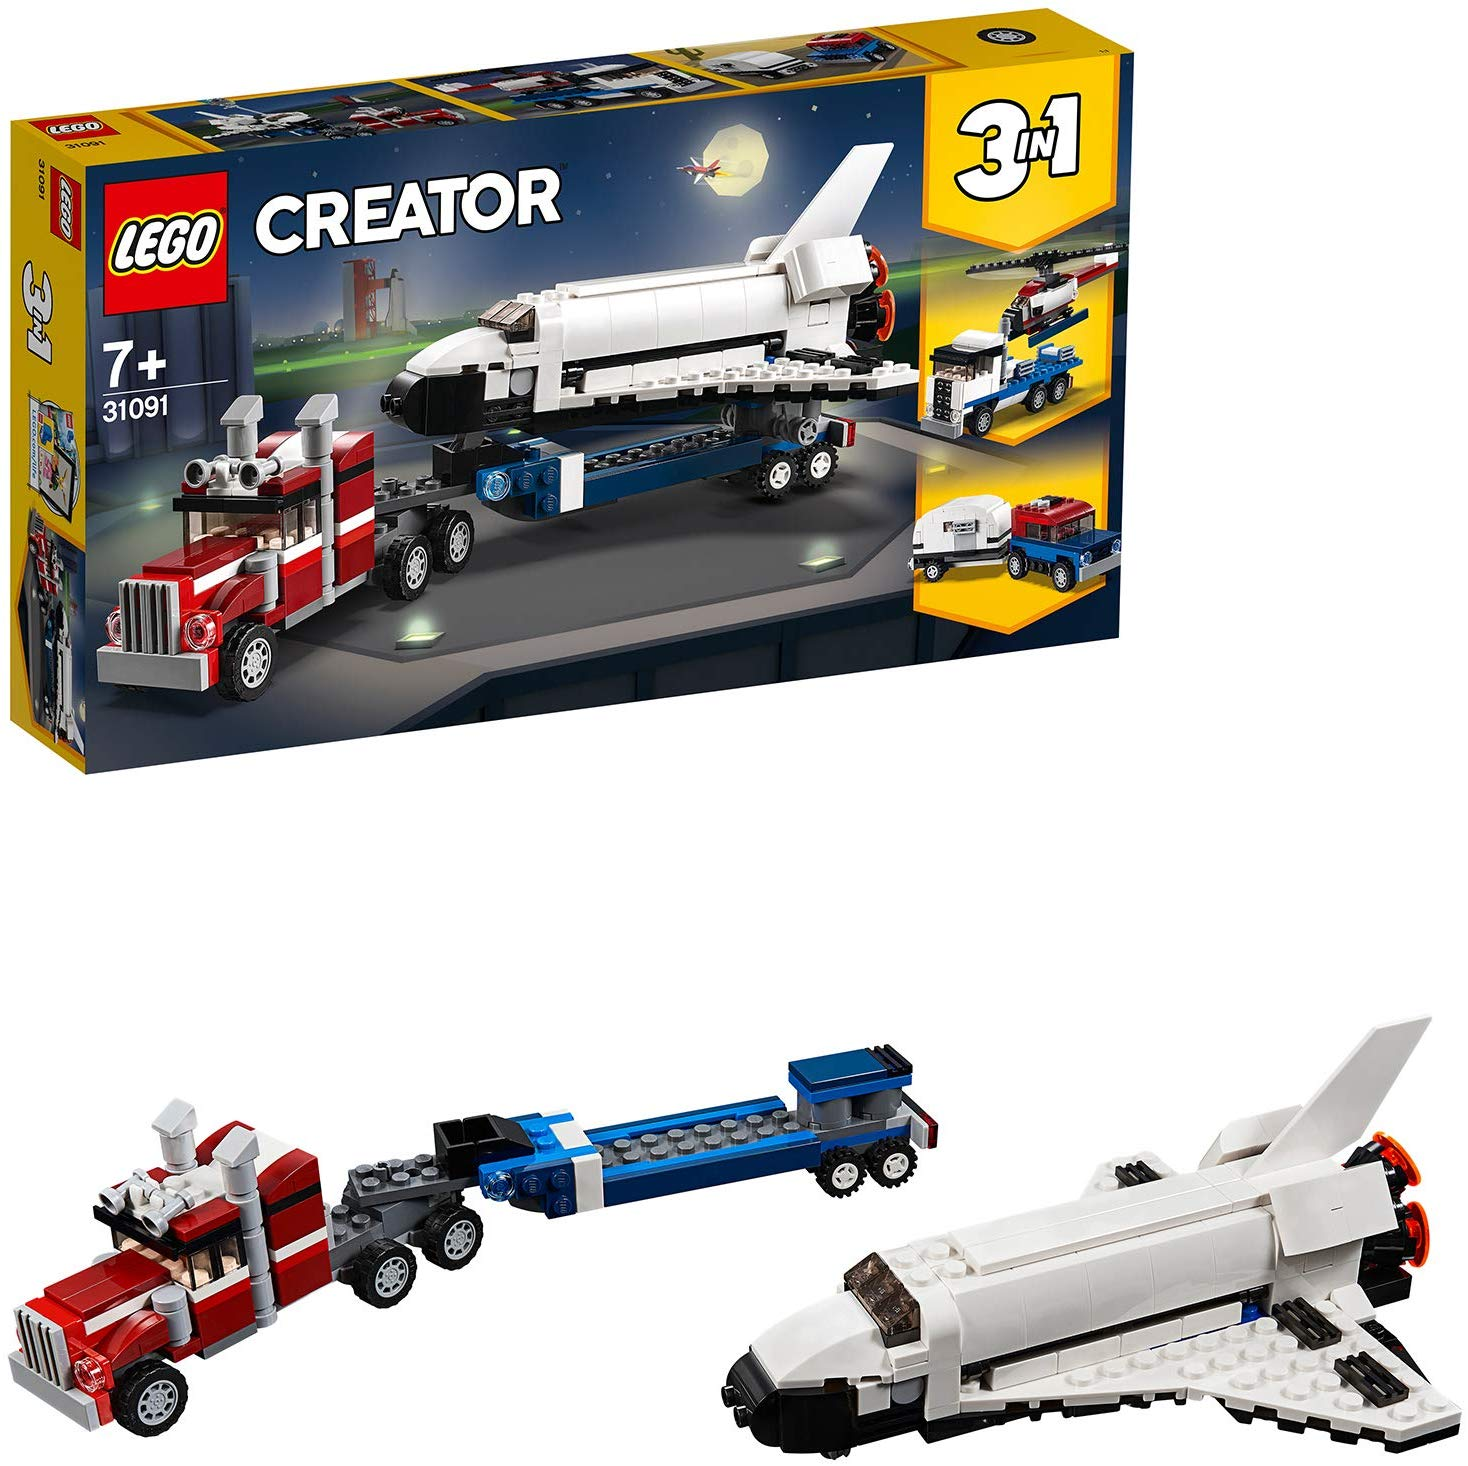 36% off LEGO Creator 3in1 Shuttle Transporter Spaceship, Helicopter Transporter and Car Set